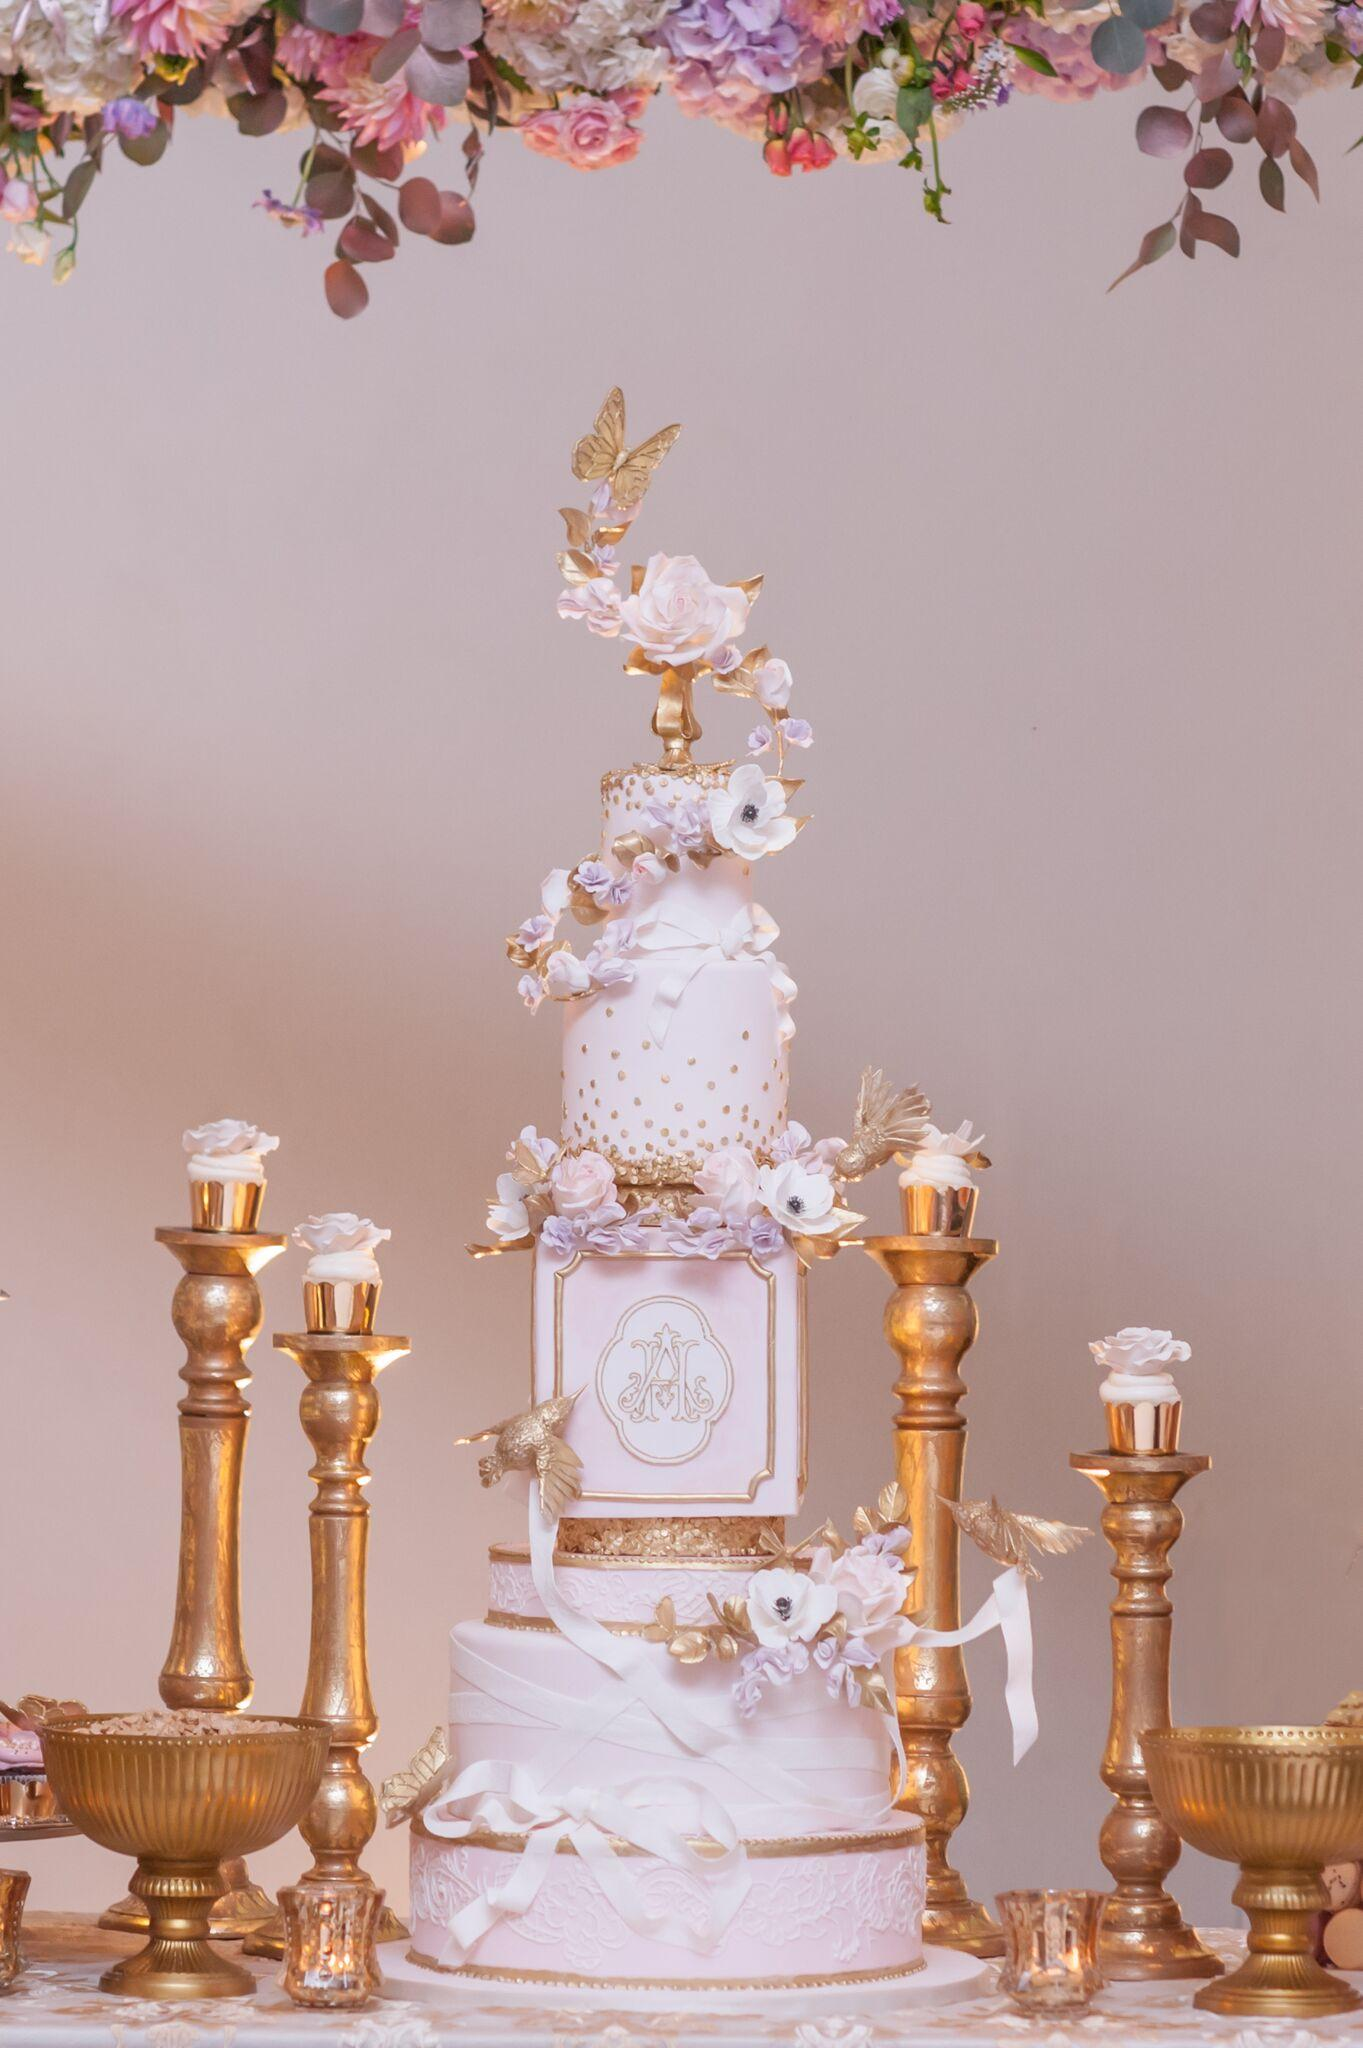 Pink Victorian with ribbons wedding cake